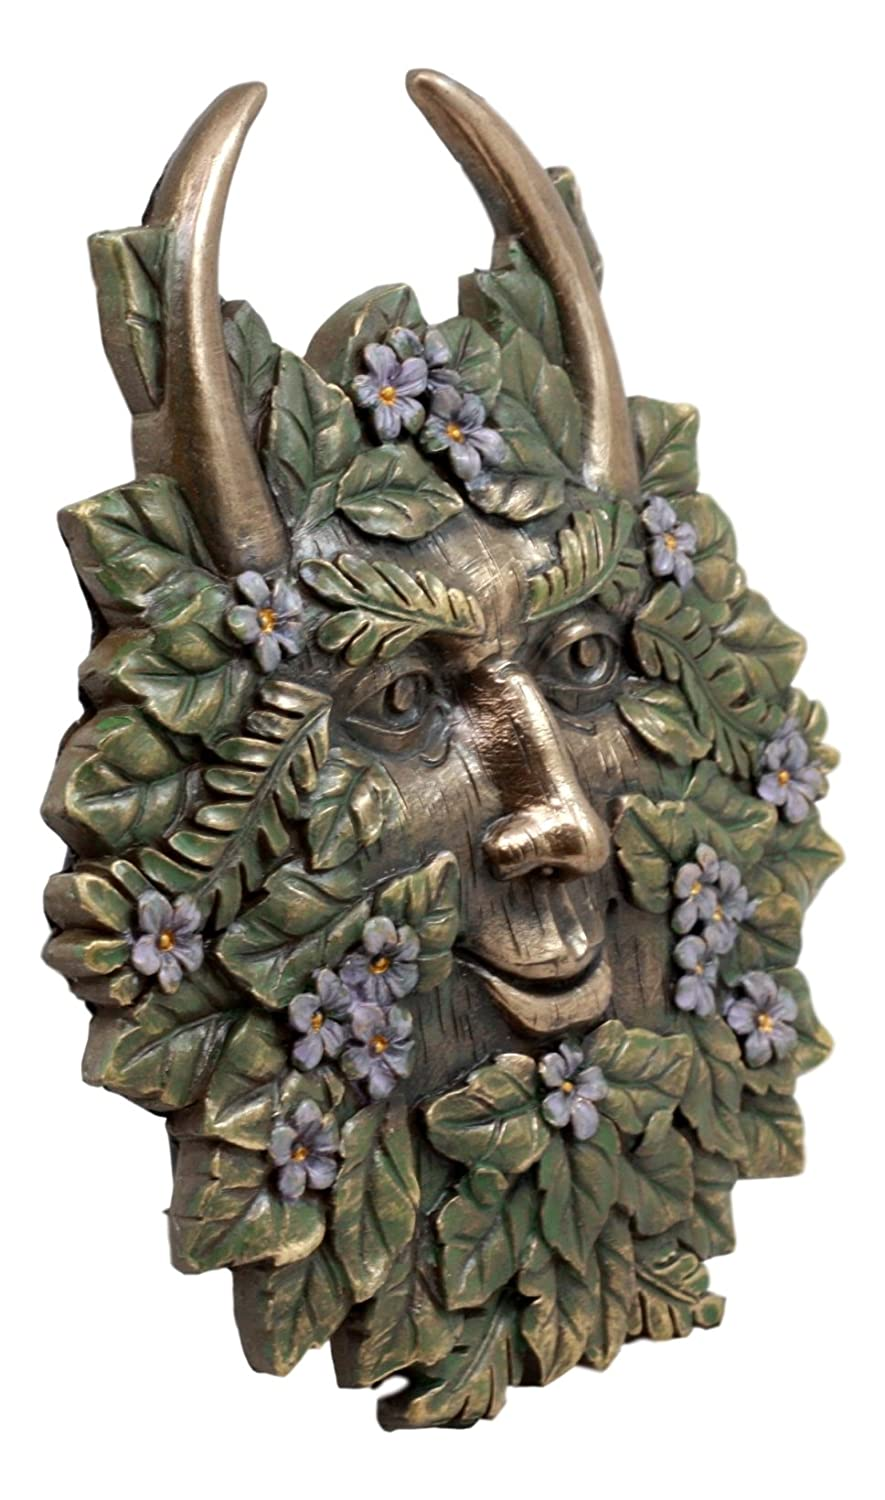 Ebros Gift The Horned God Spring Season Greenman Pan Wall Decor Plaque 7 Wide Decorative Sculpture